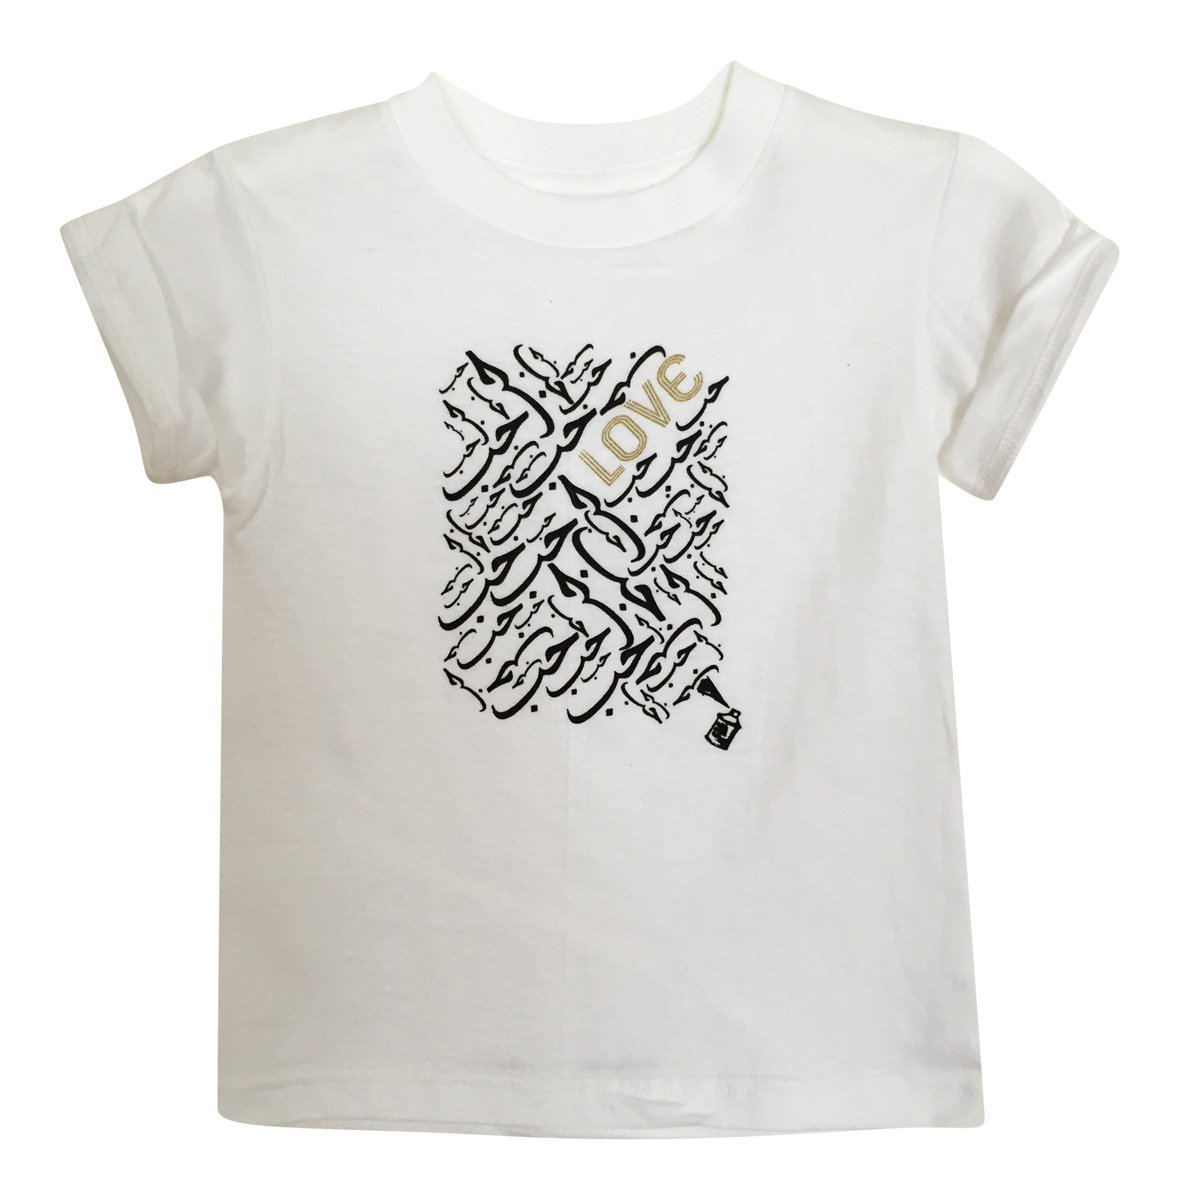 Kids - Little Girl's Love Tee- White